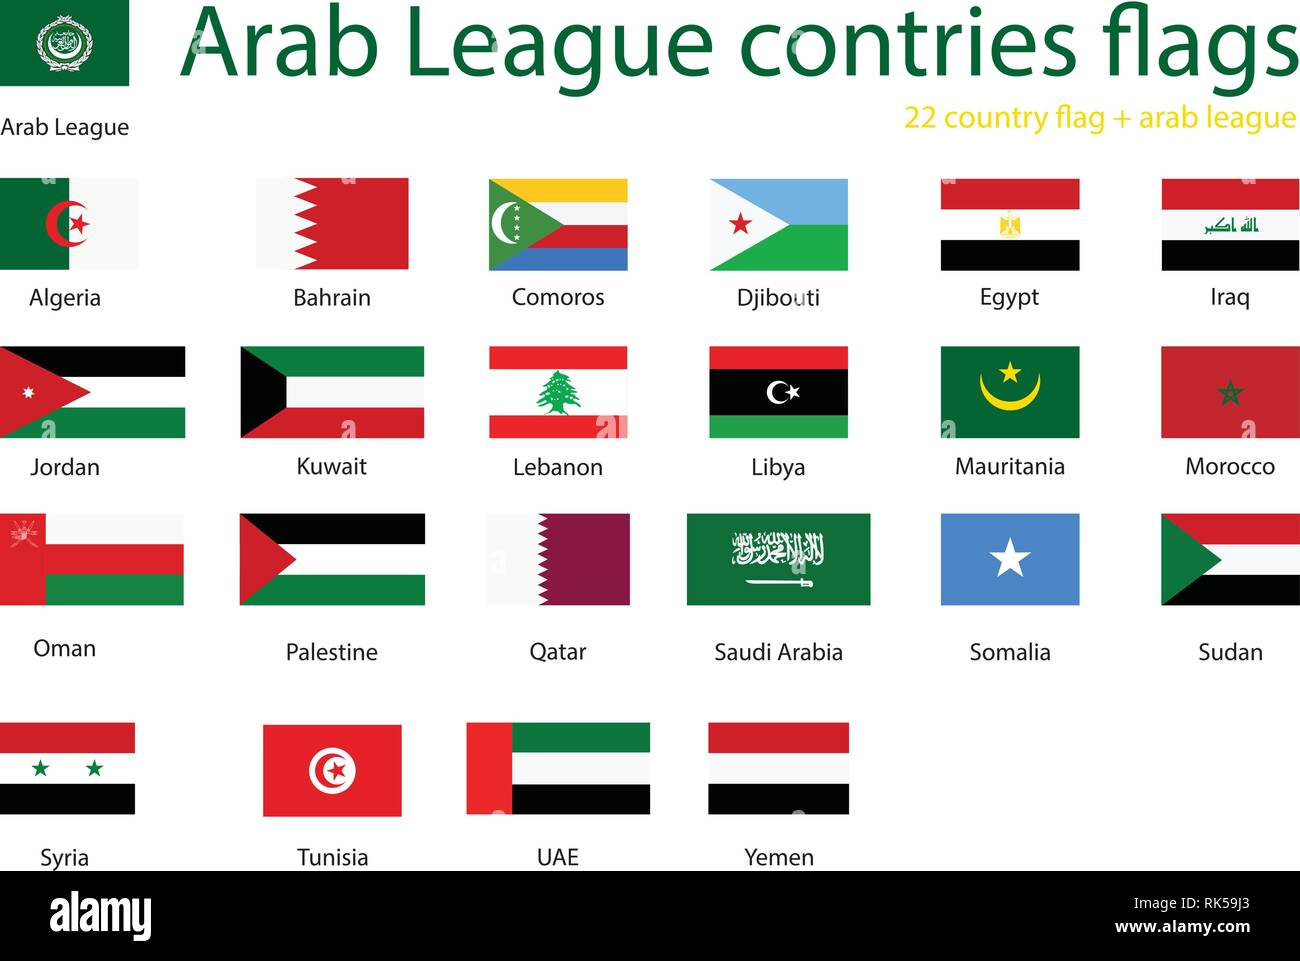 Member states of Arab League, set of country flags (League of Arab States, international regional organization), vector illustration, flat icons. - Stock Image